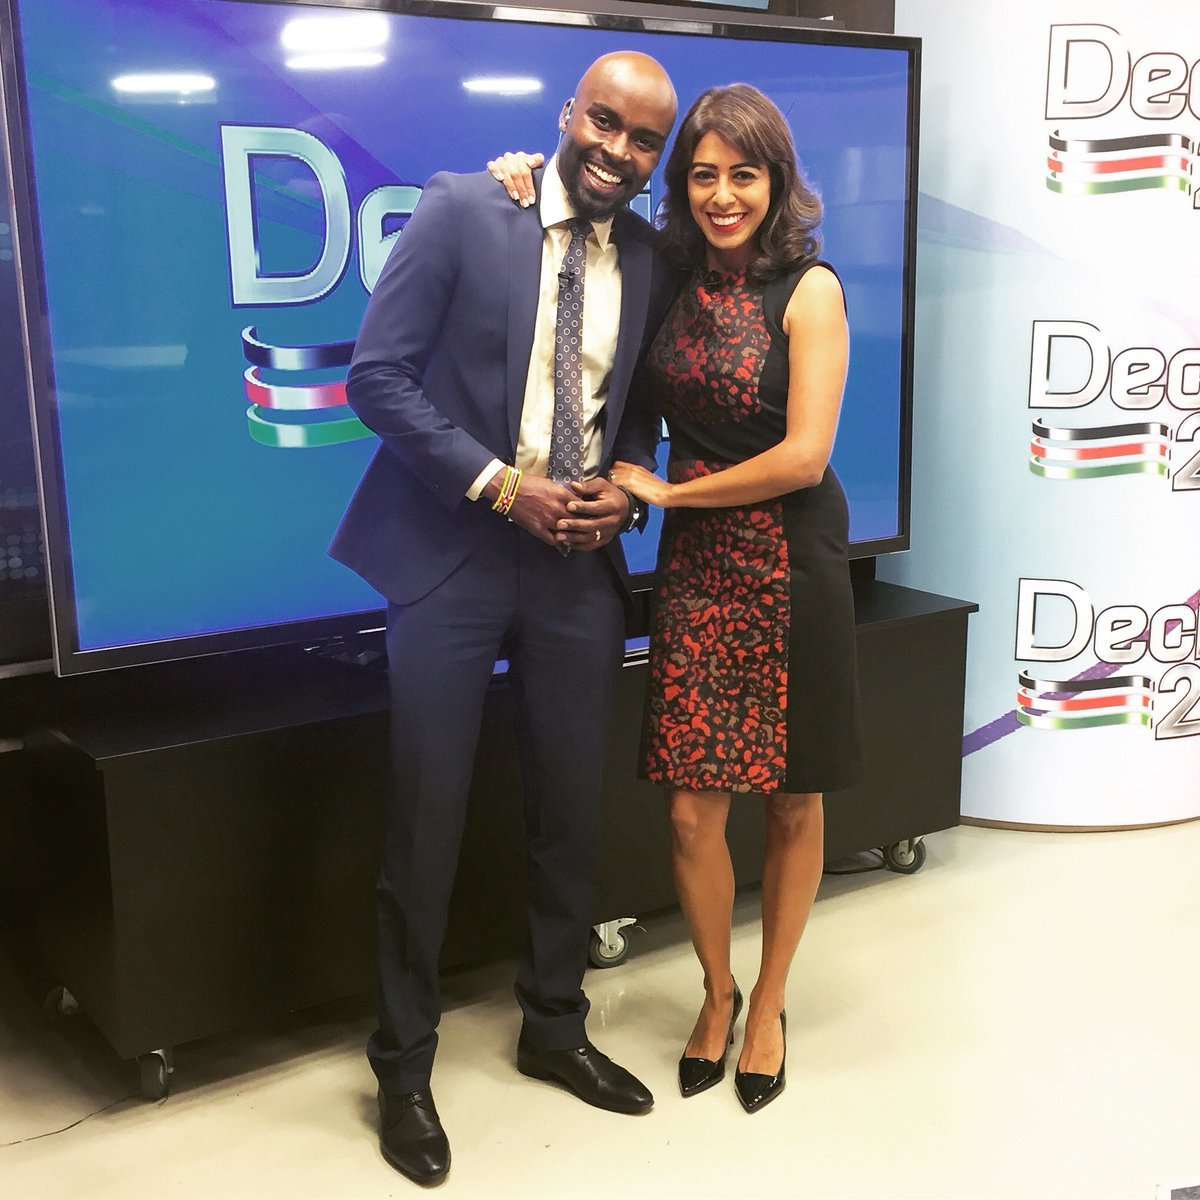 Seasons of blessings!! Yet another top news anchor is pregnant, shares photos of baby shower